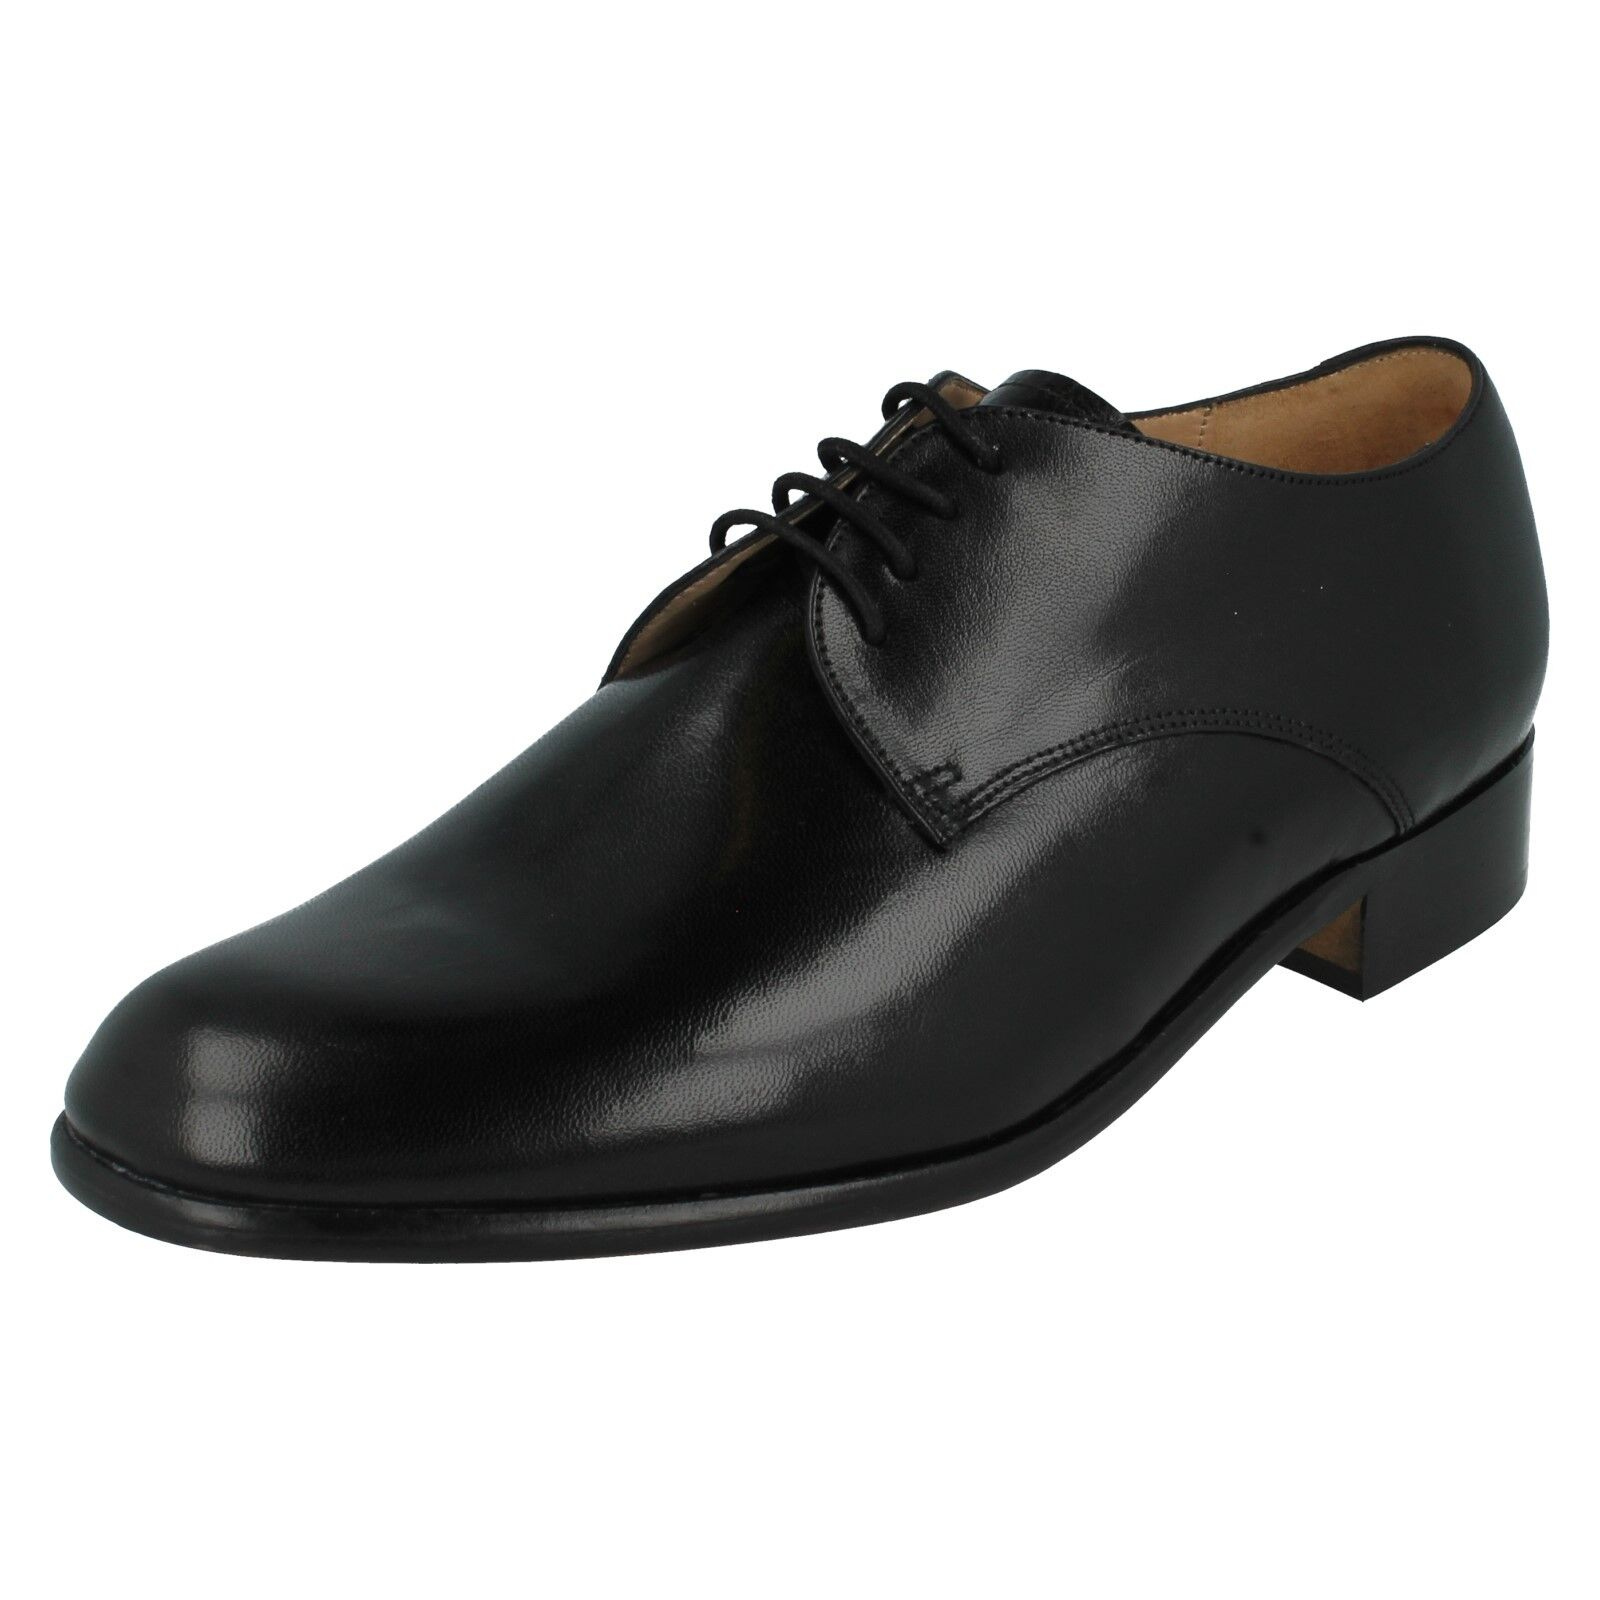 Herren BLACK LEATHER UP LACE UP LEATHER FORMAL WORK Schuhe SIZE 7  8 GRENSON TEMPLEMEADS 5862ef